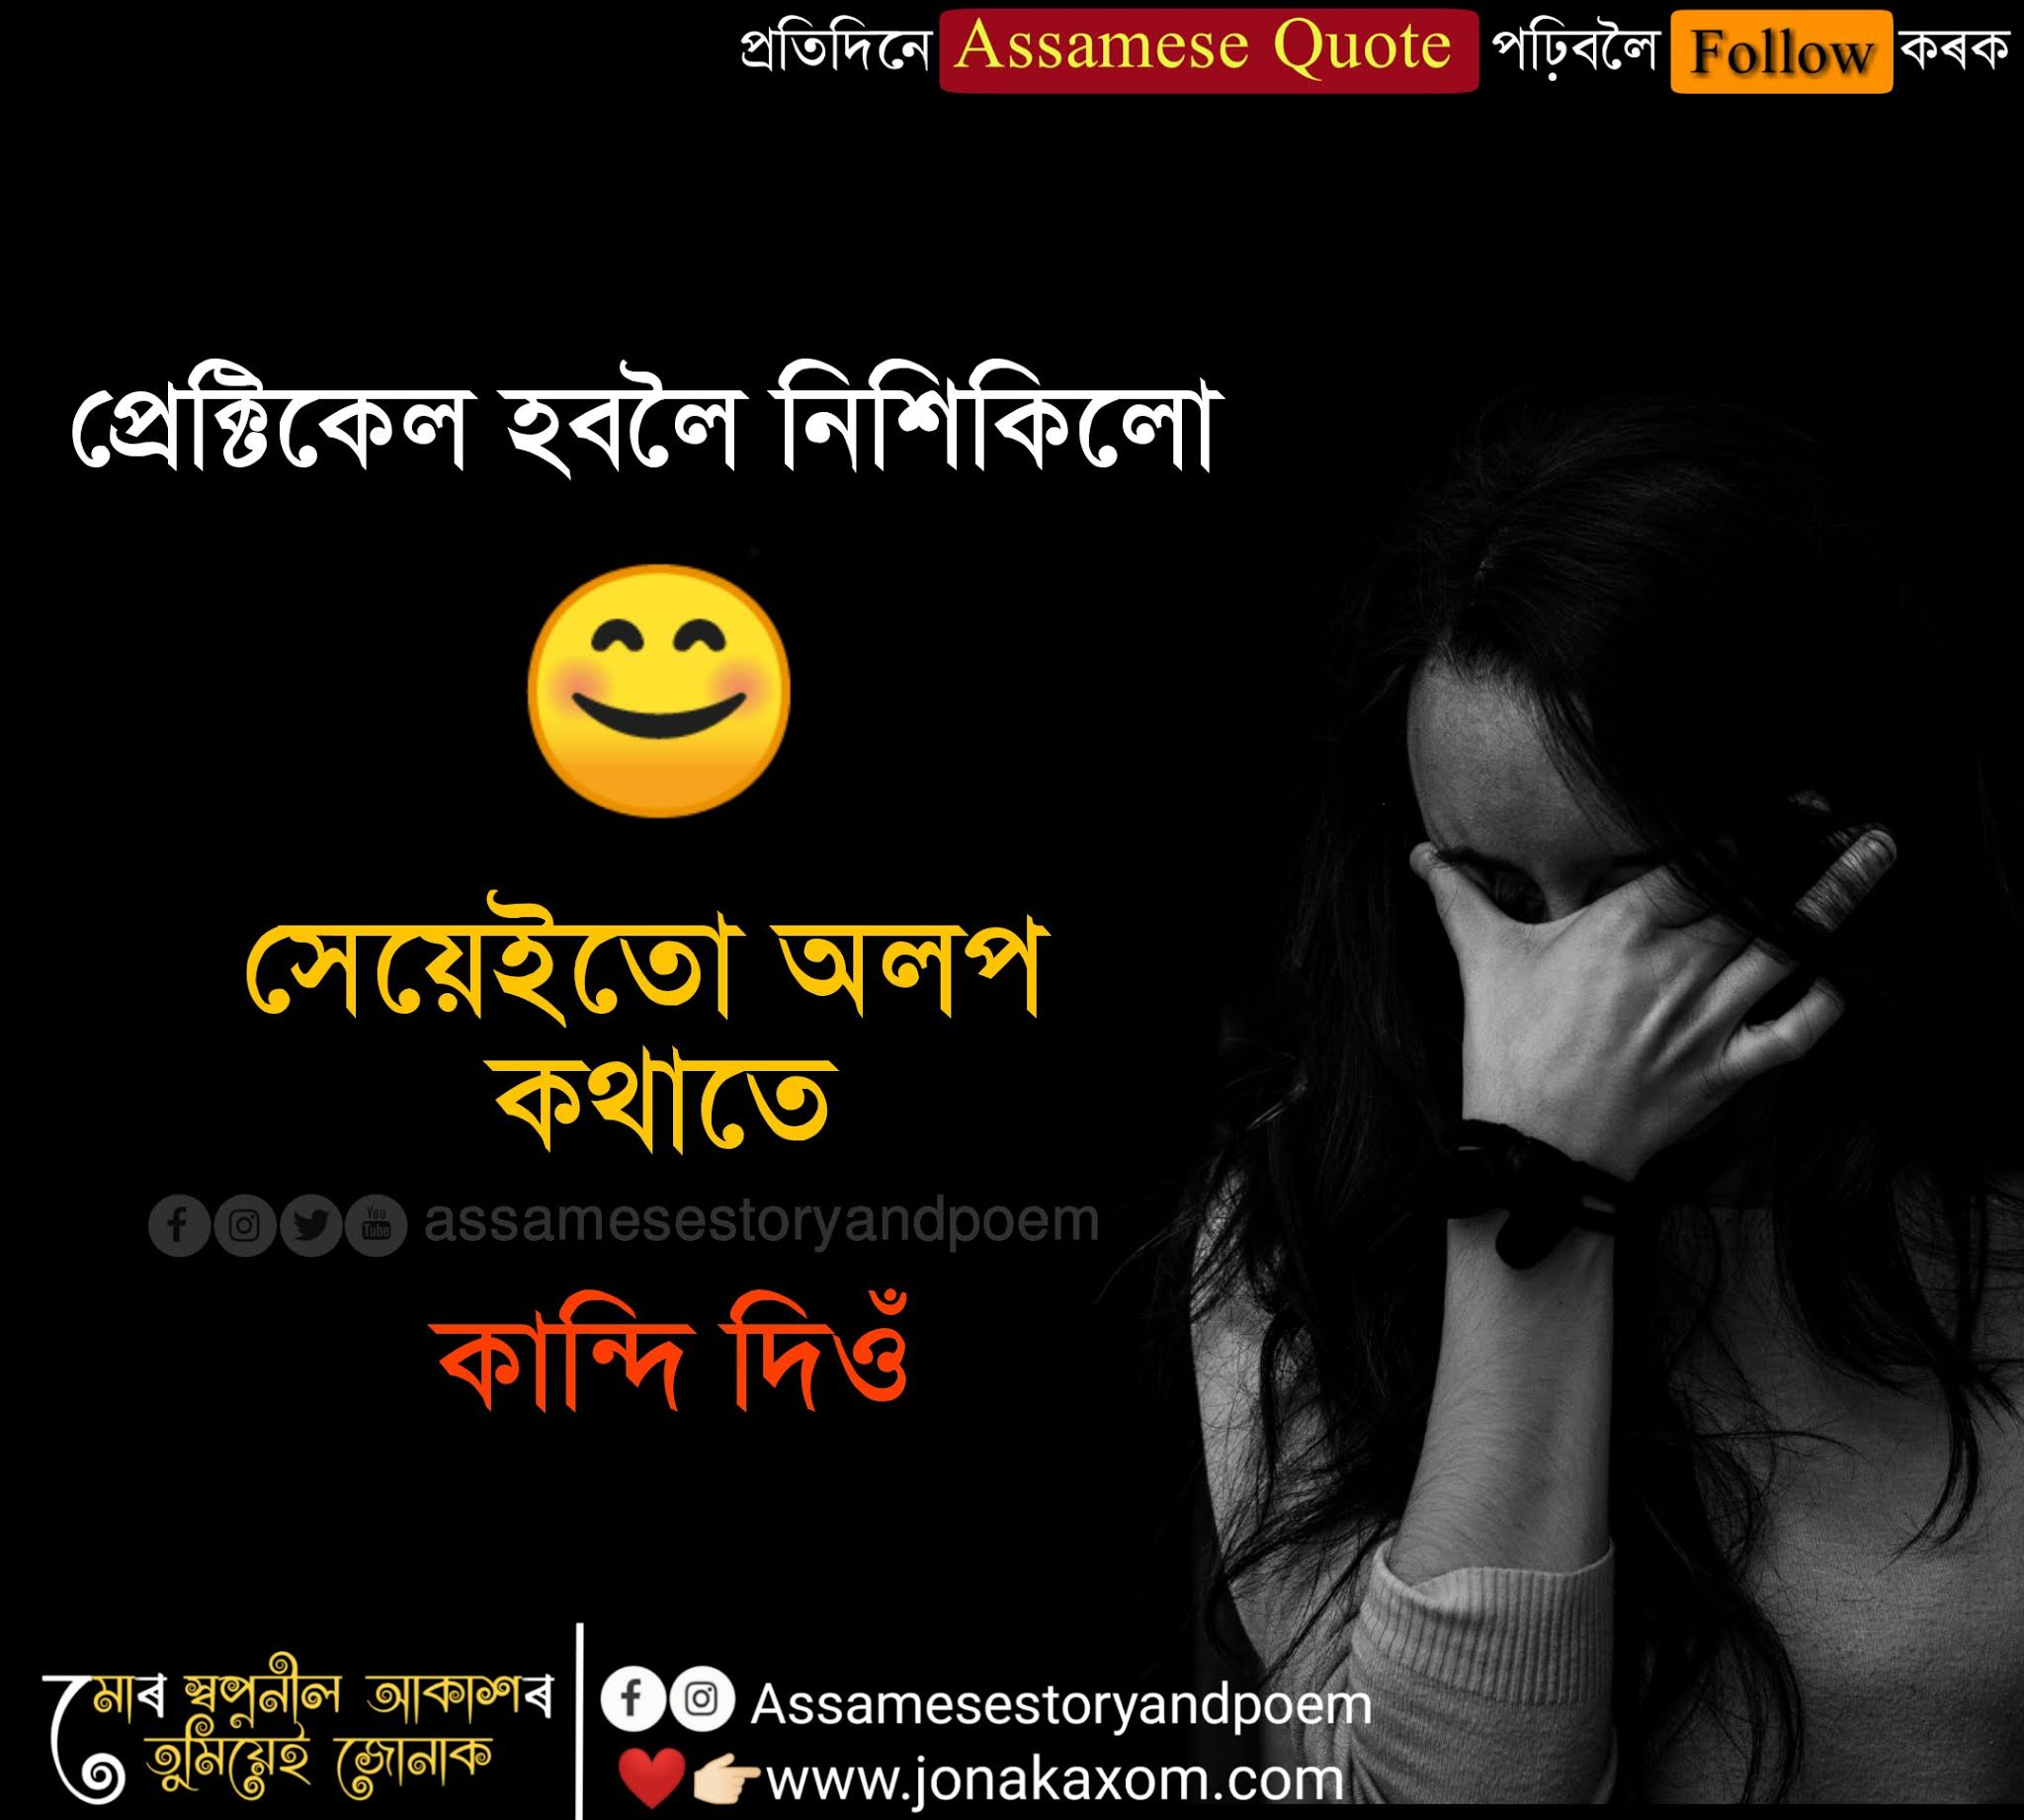 assamese sad quotes photo| assamese quotes on love